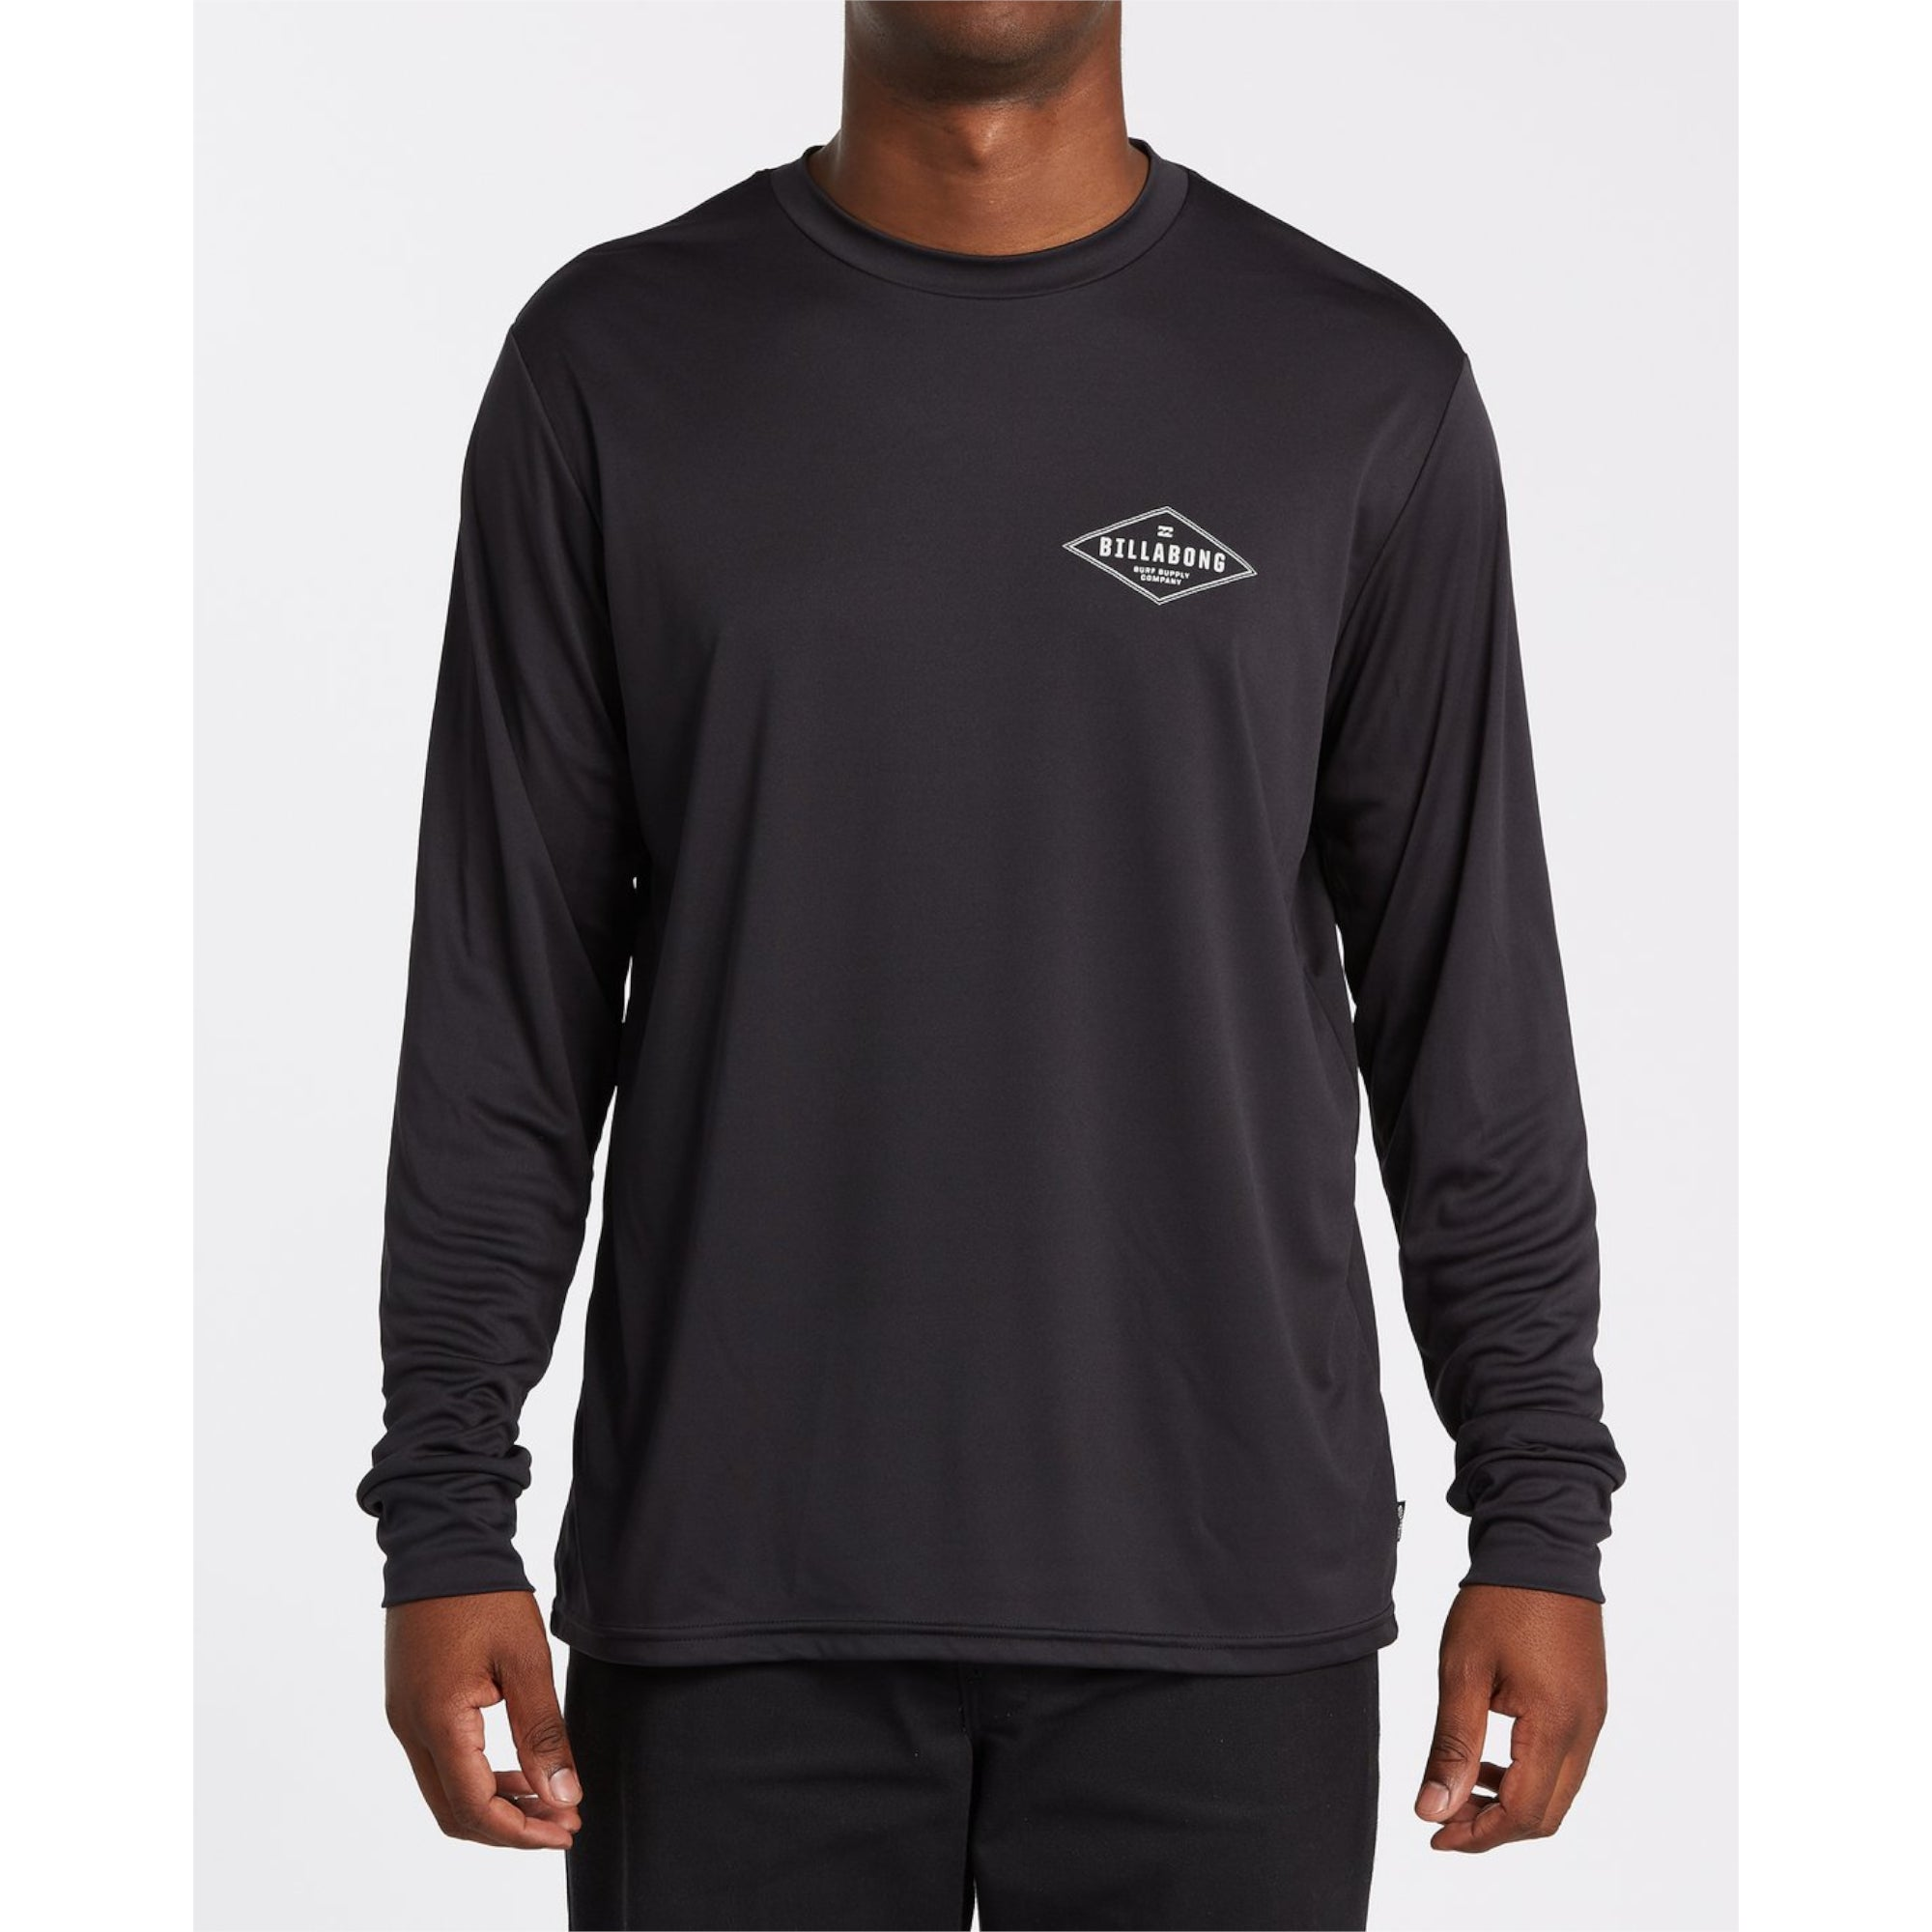 Billabong Surf Supply Men's L/S T-Shirt